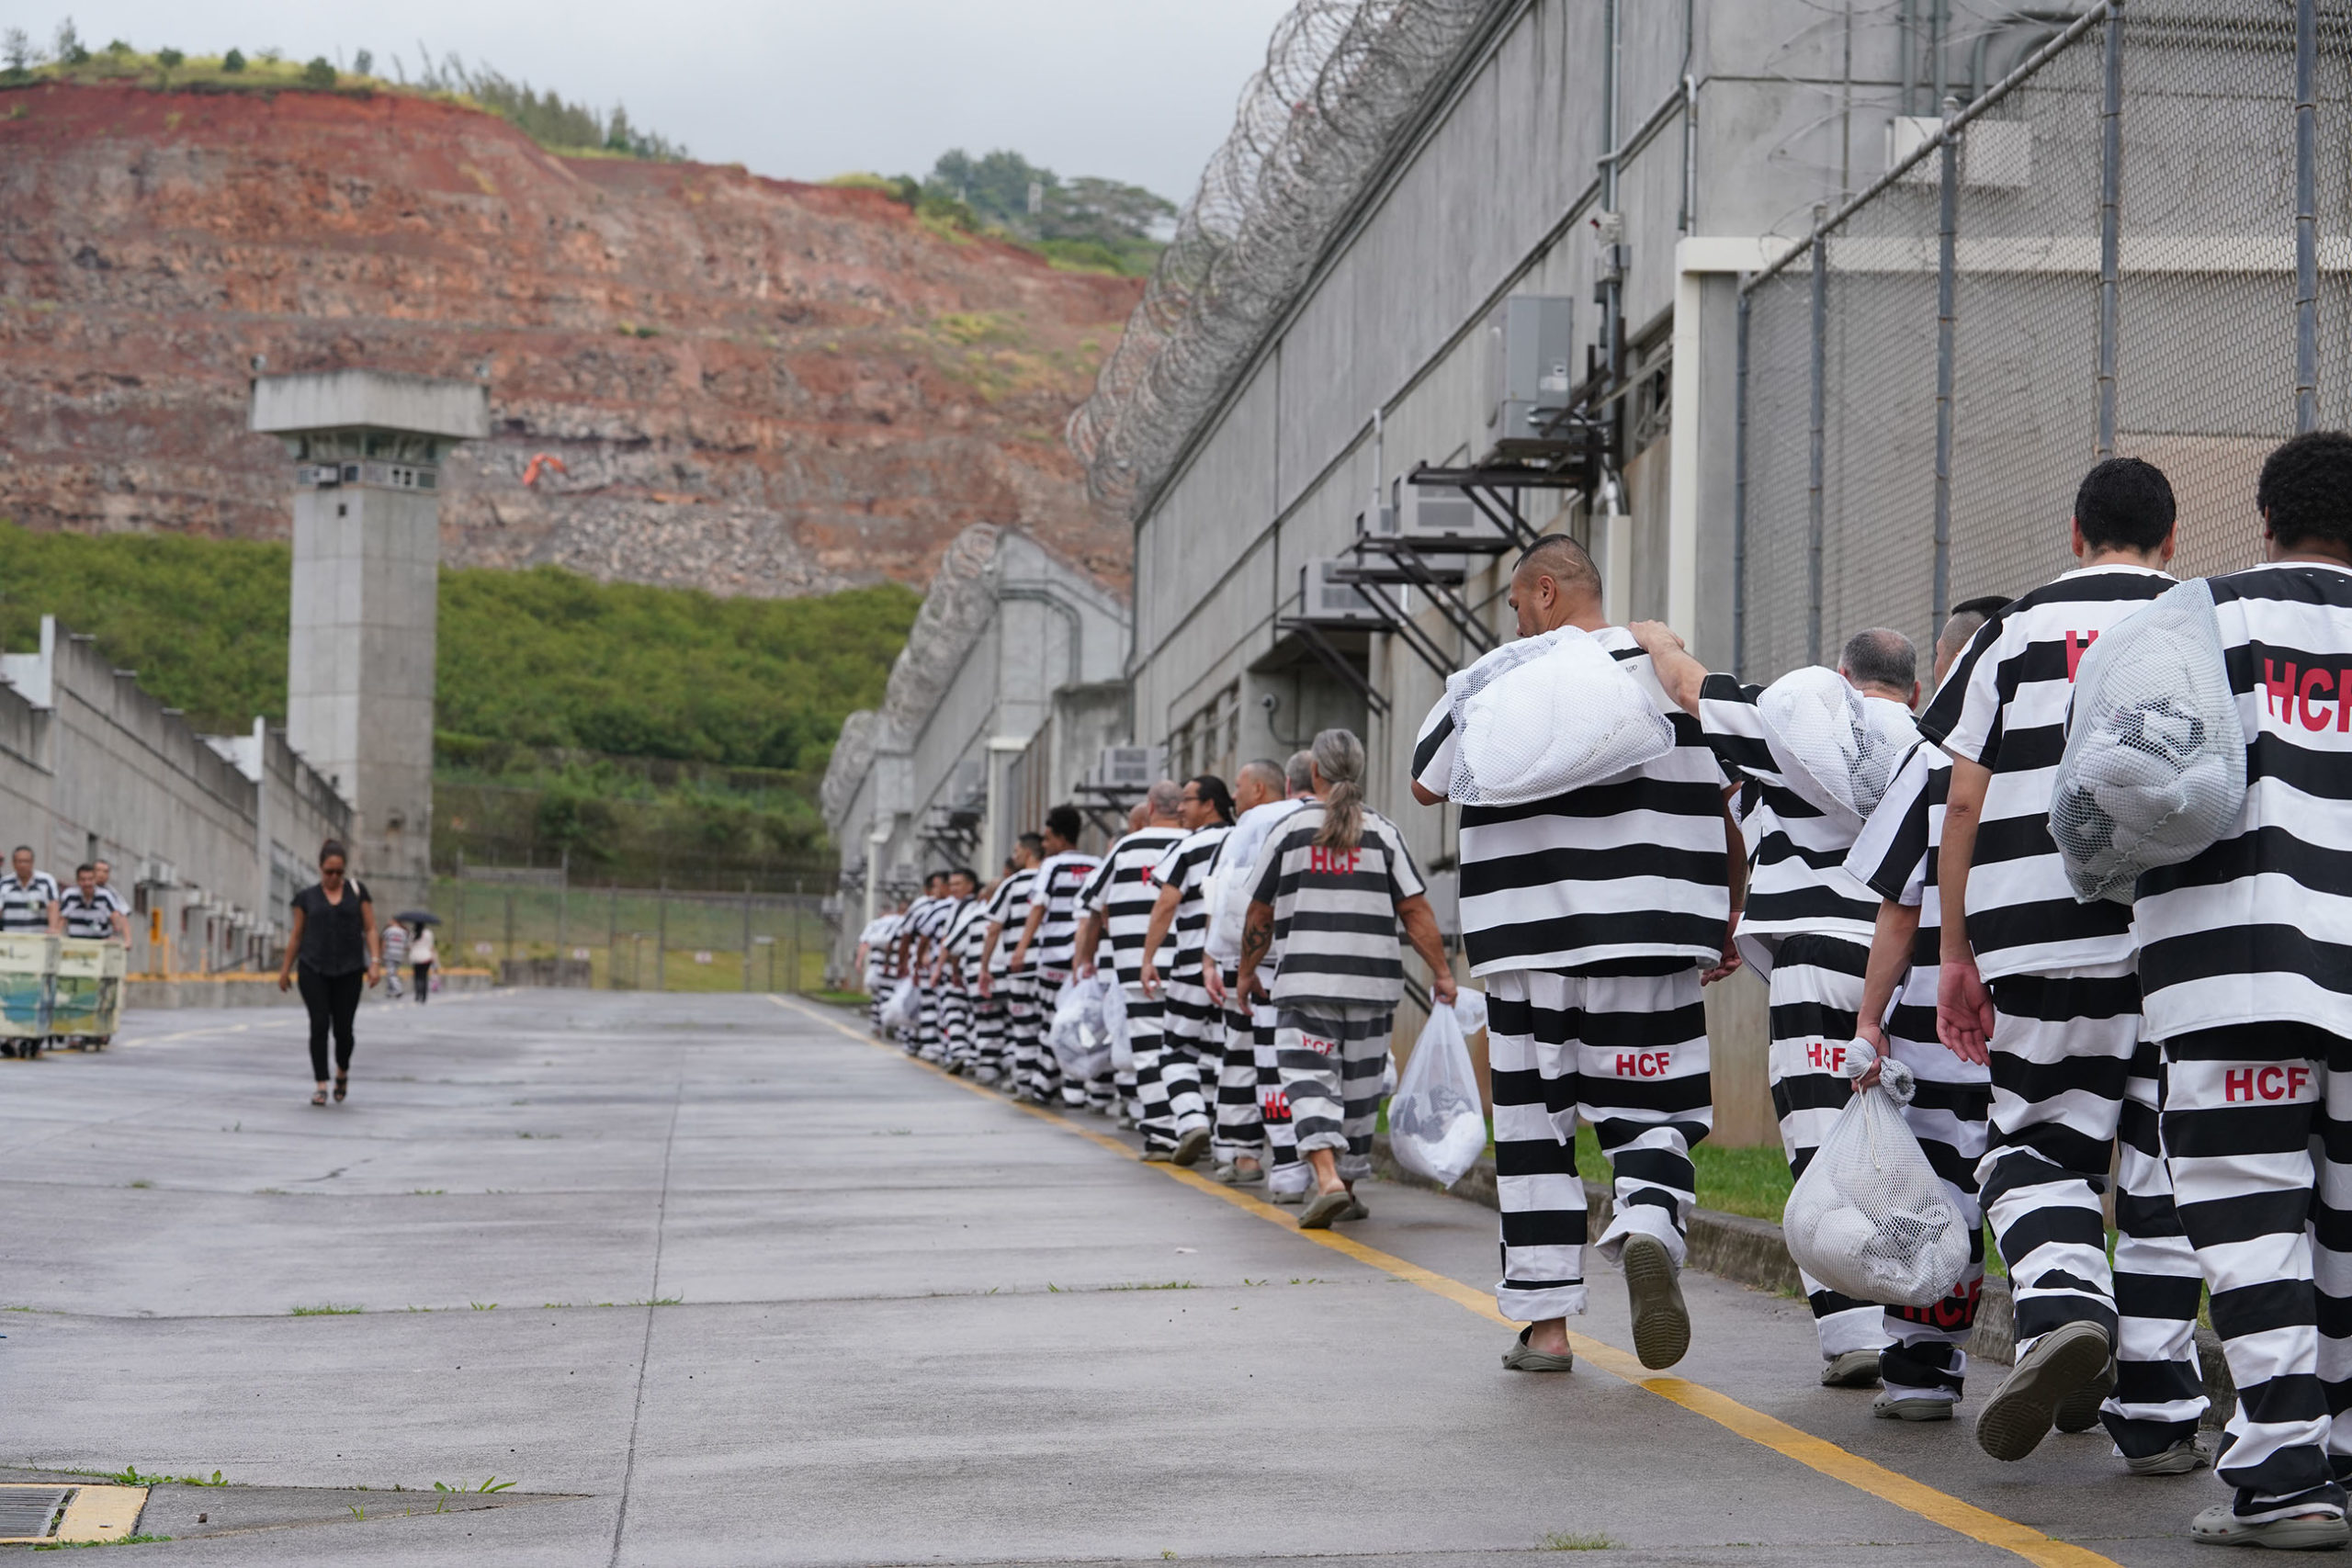 <p>At Halawa Correctional Facility, different color suits indicate different security levels of the inmates. Black stripes are general population, while green are work line inmates, and red are closed security inmates, one level down from maximum security. Maximum security inmates wear orange suits.</p>